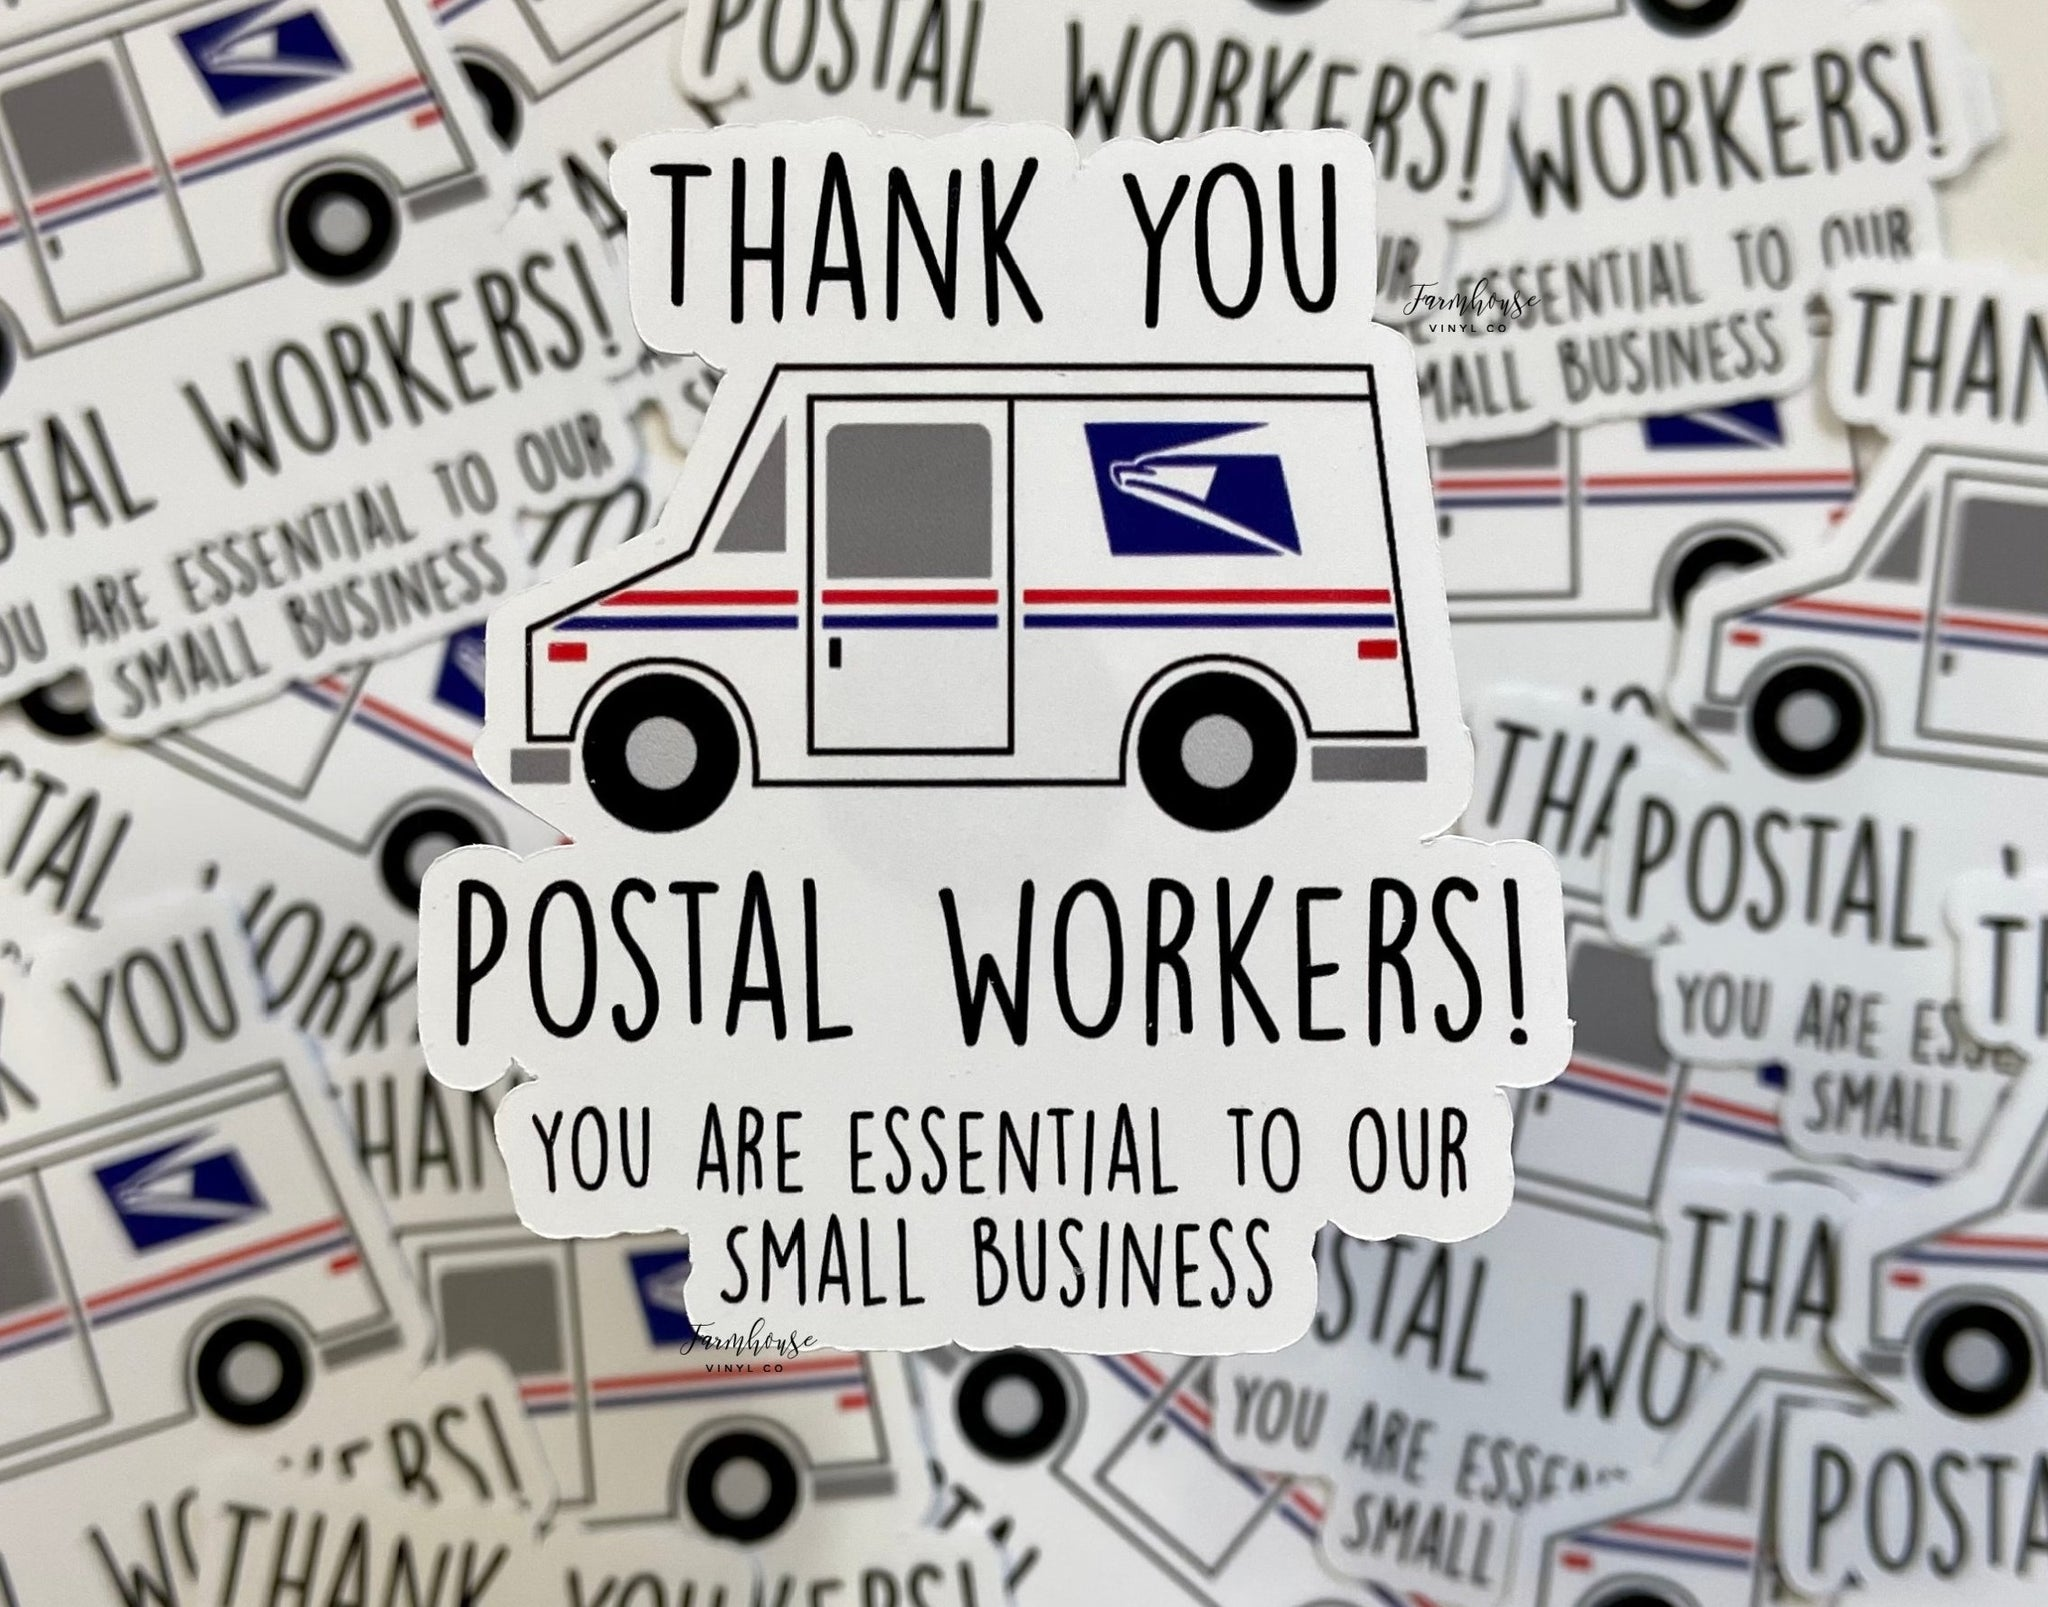 Thank You Postal Workers Stickers